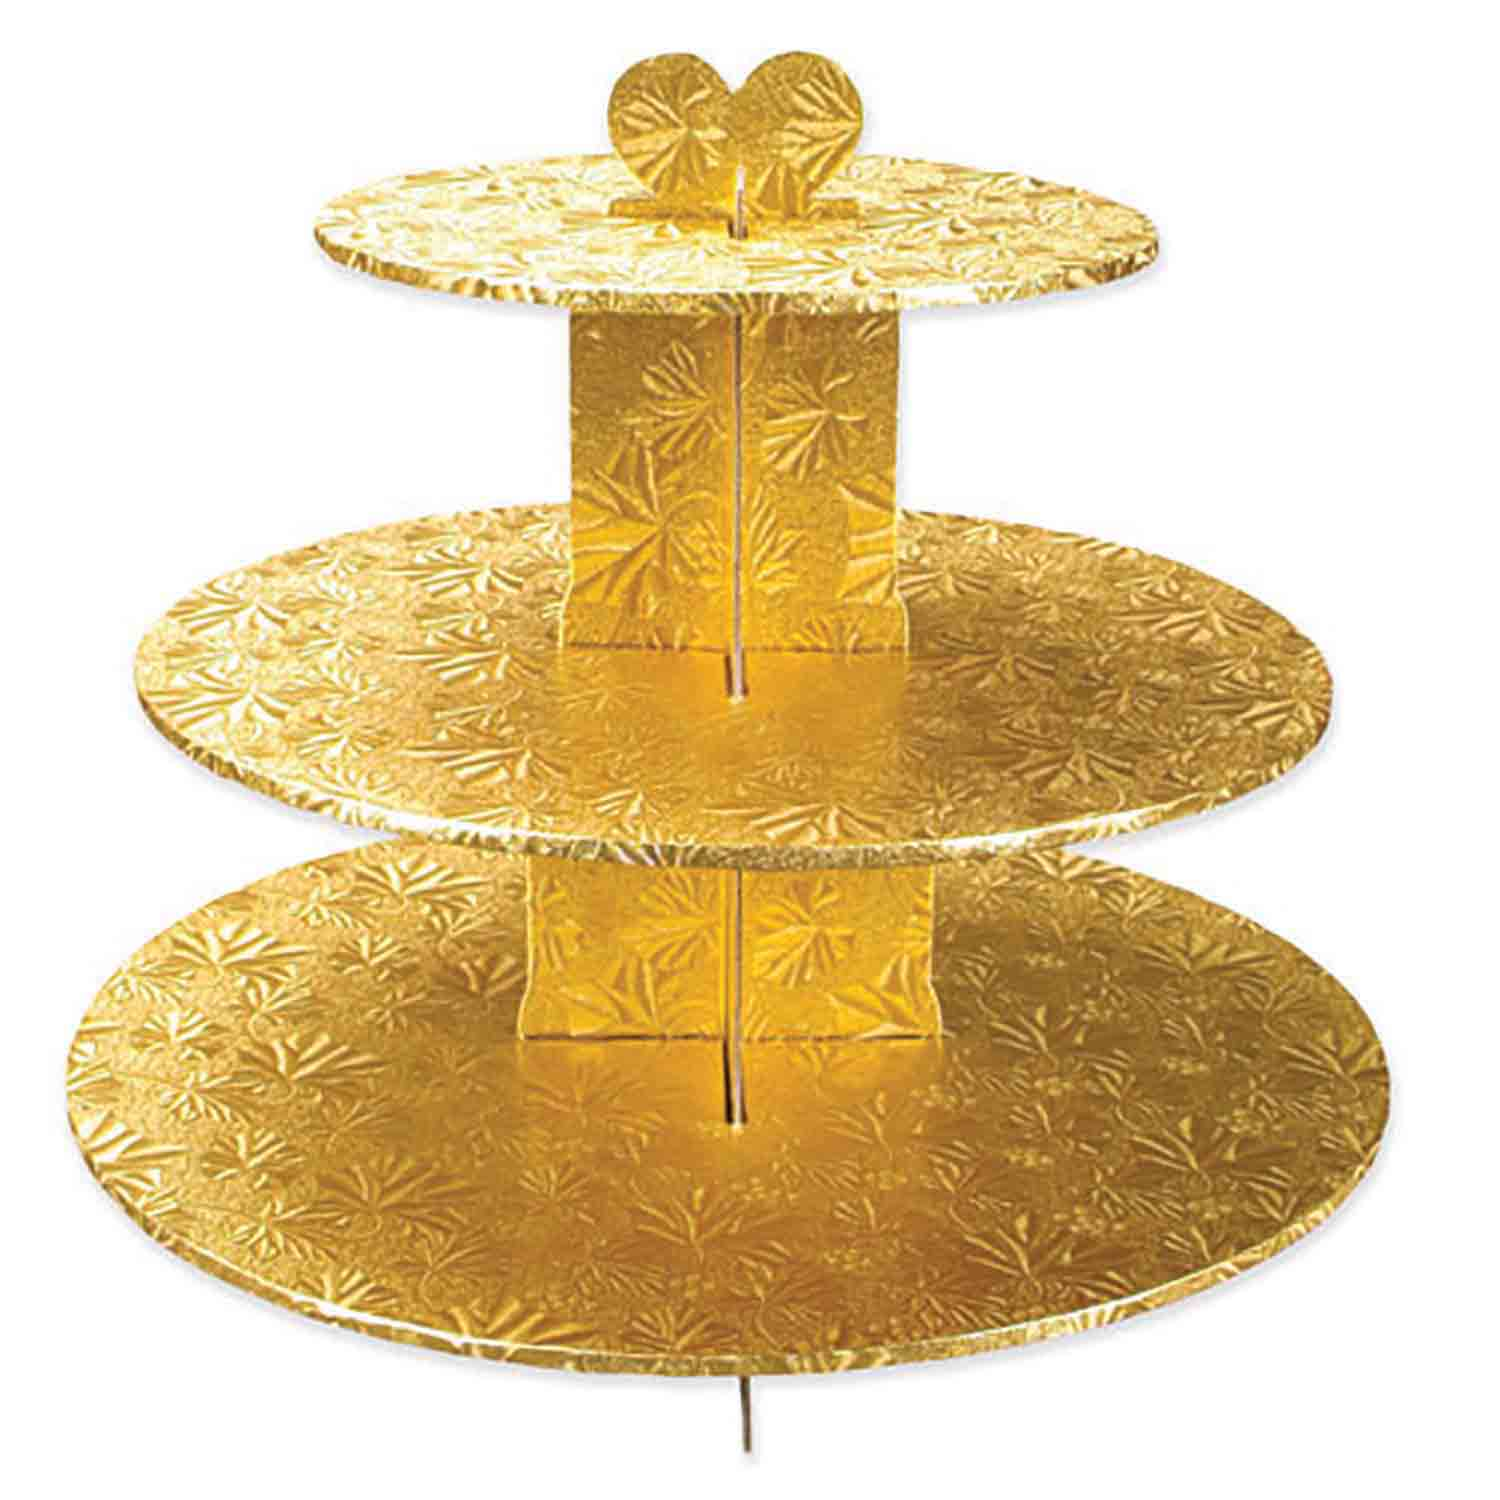 Country Kitchen Fort Wayne: Gold 3 Tier Cupcake Stand - 37-6700G